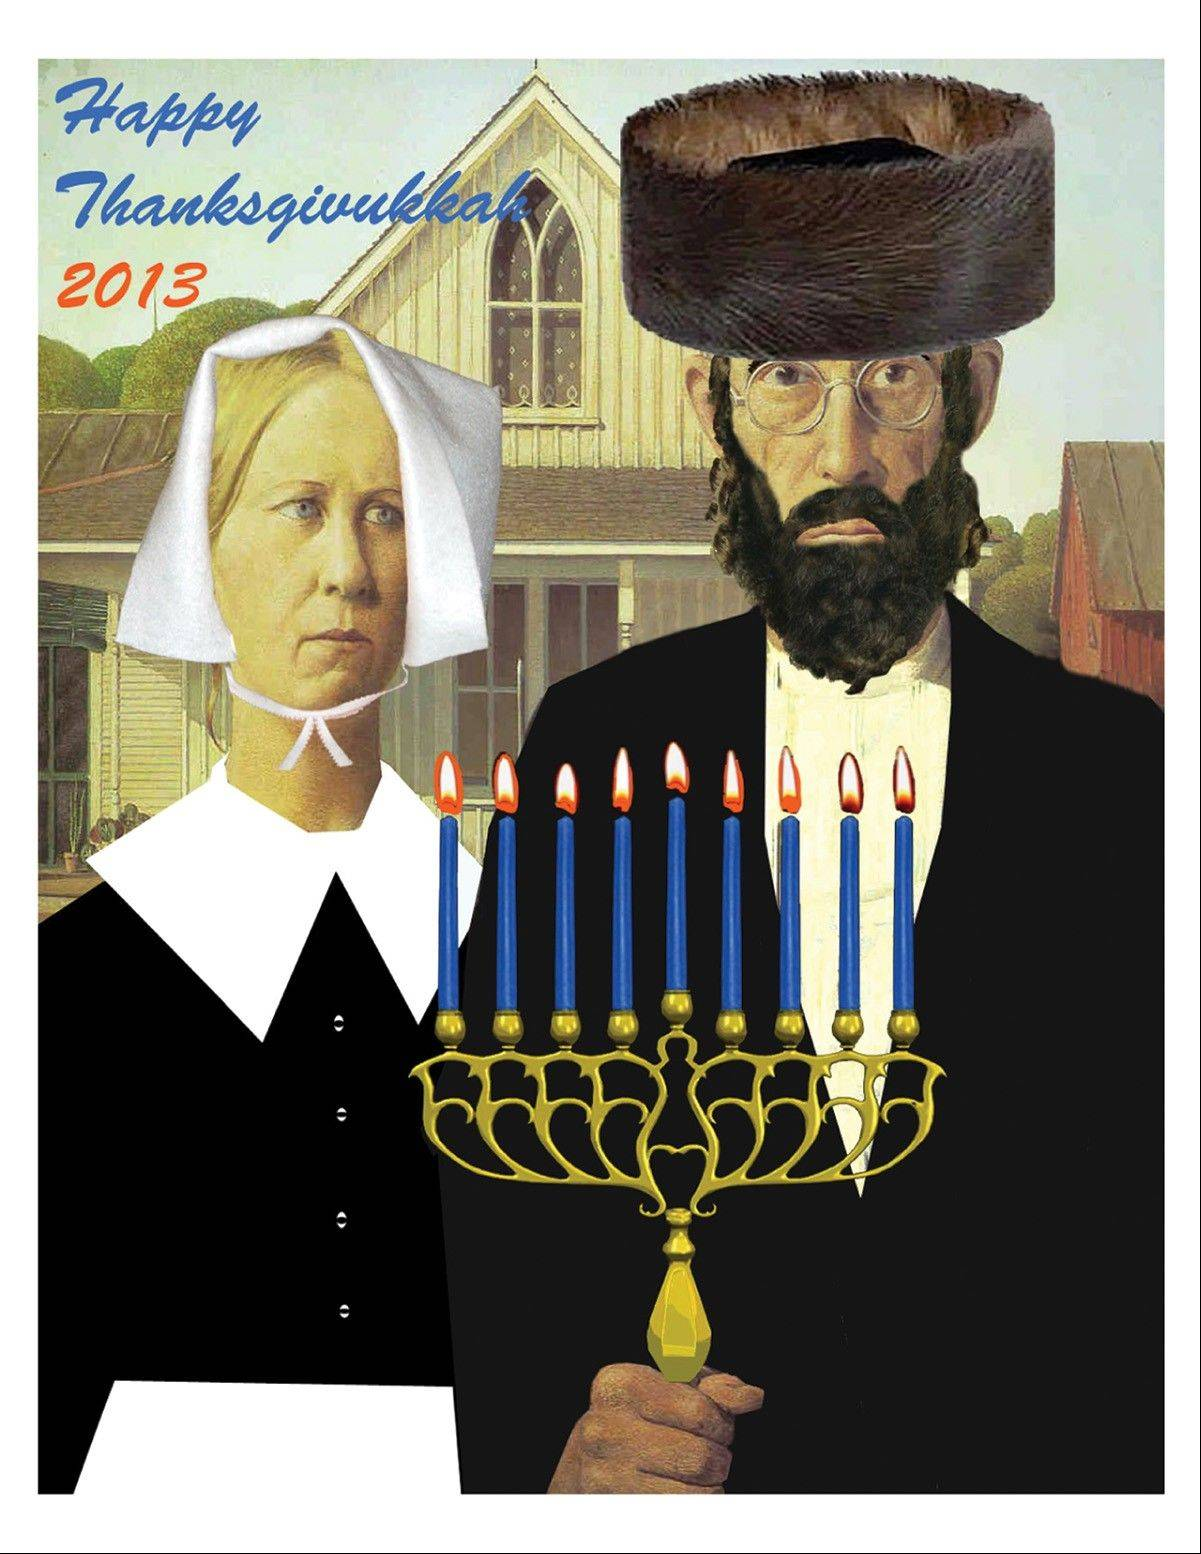 This American Gothic Thanksgivukkah Poster celebrates Thanksgiving and Hanukkah.